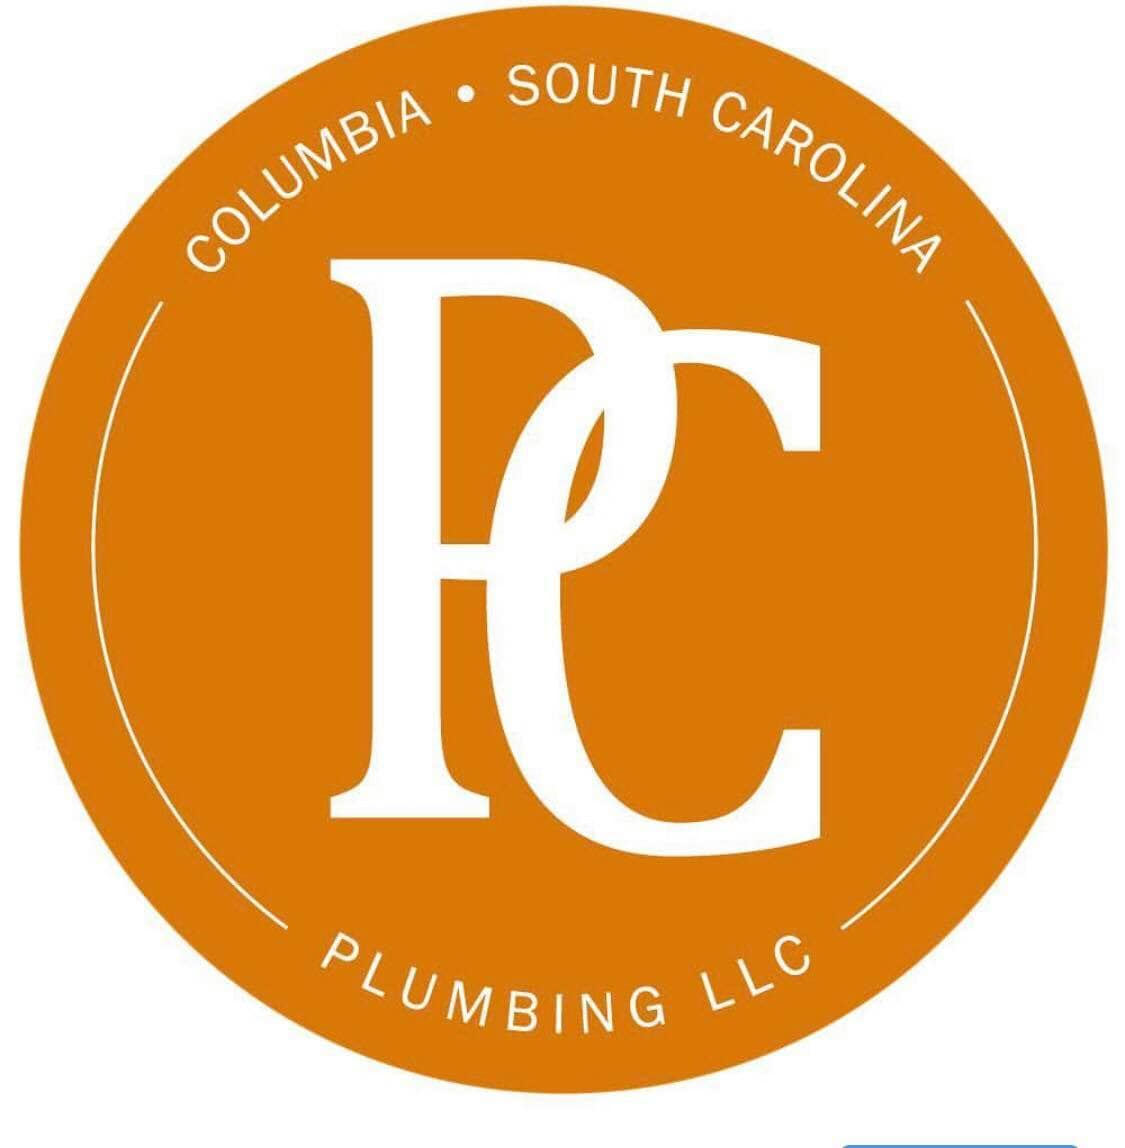 People's Choice Plumbing